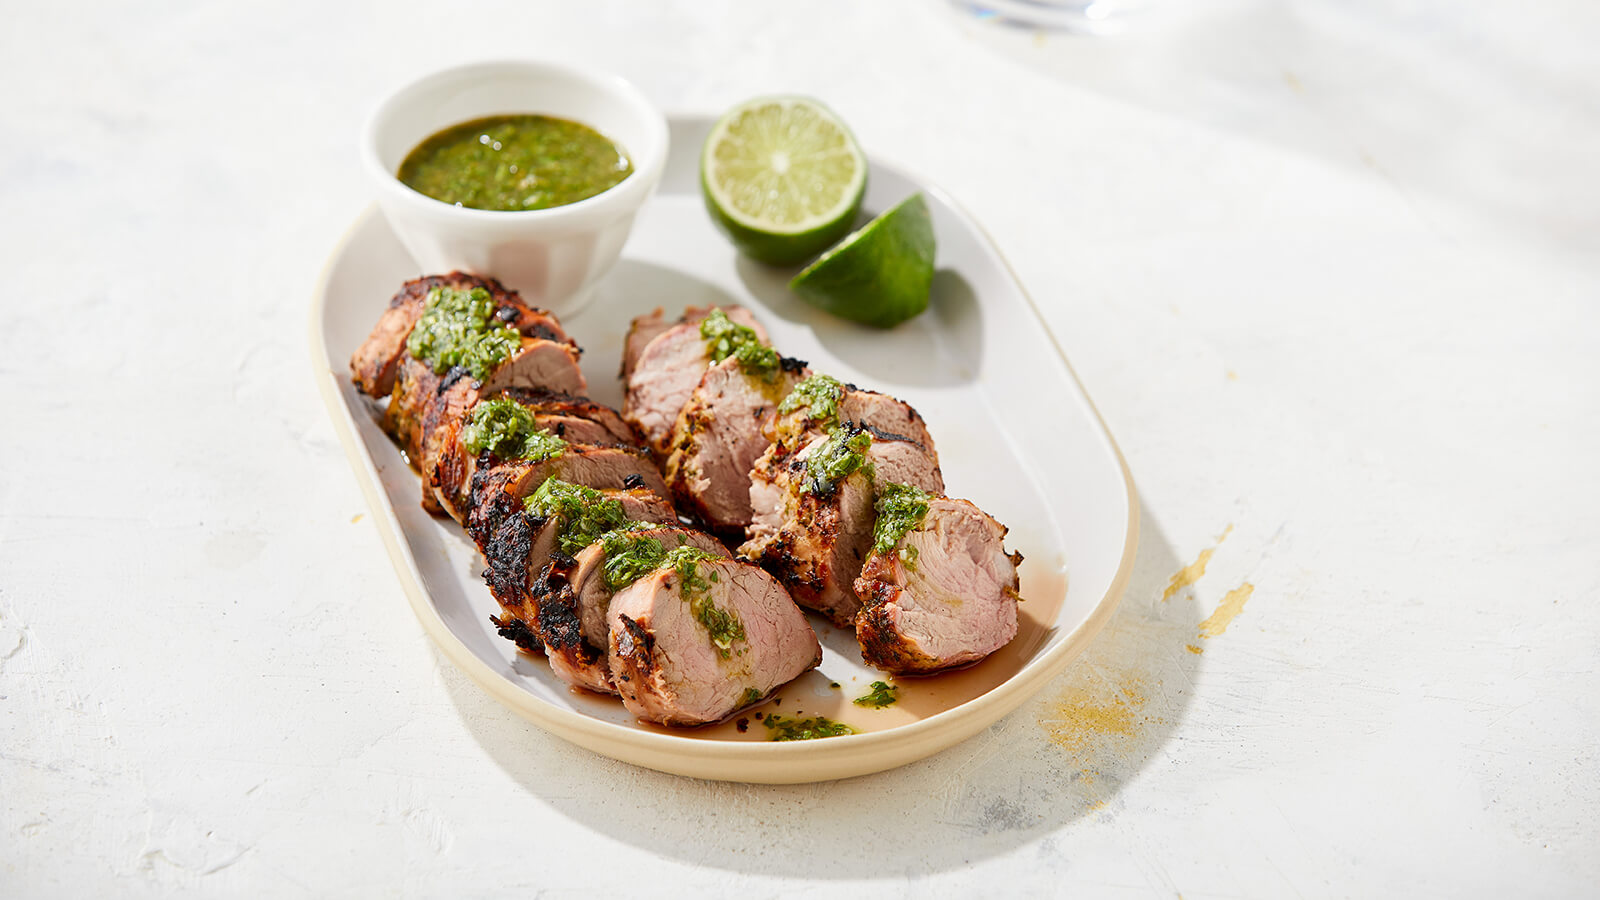 Grilled Pork Tenderloin with Verde Chimichurri